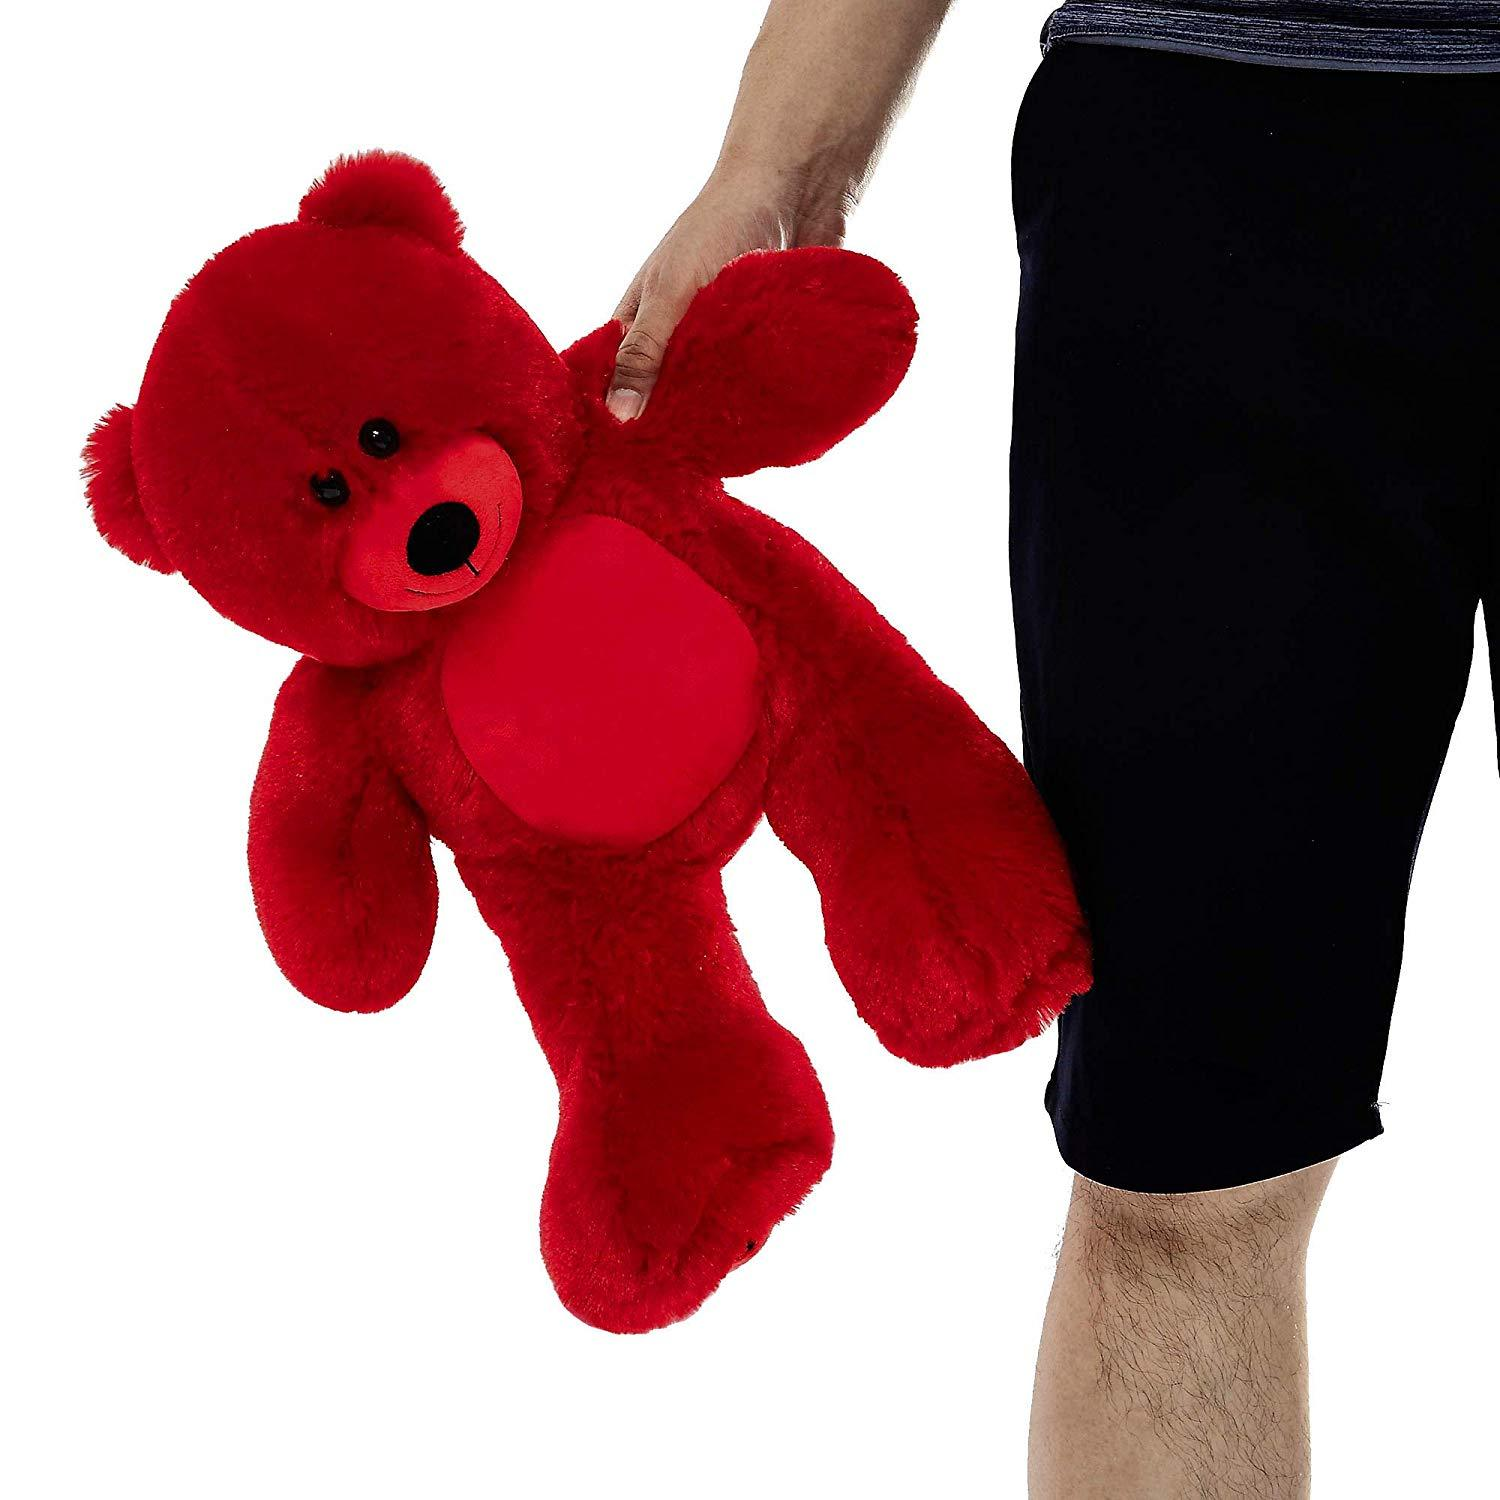 "WOWMAX Red Teddy Bear 10"" Sitting Height Small Cute Stuffed Animal Plush Toy"